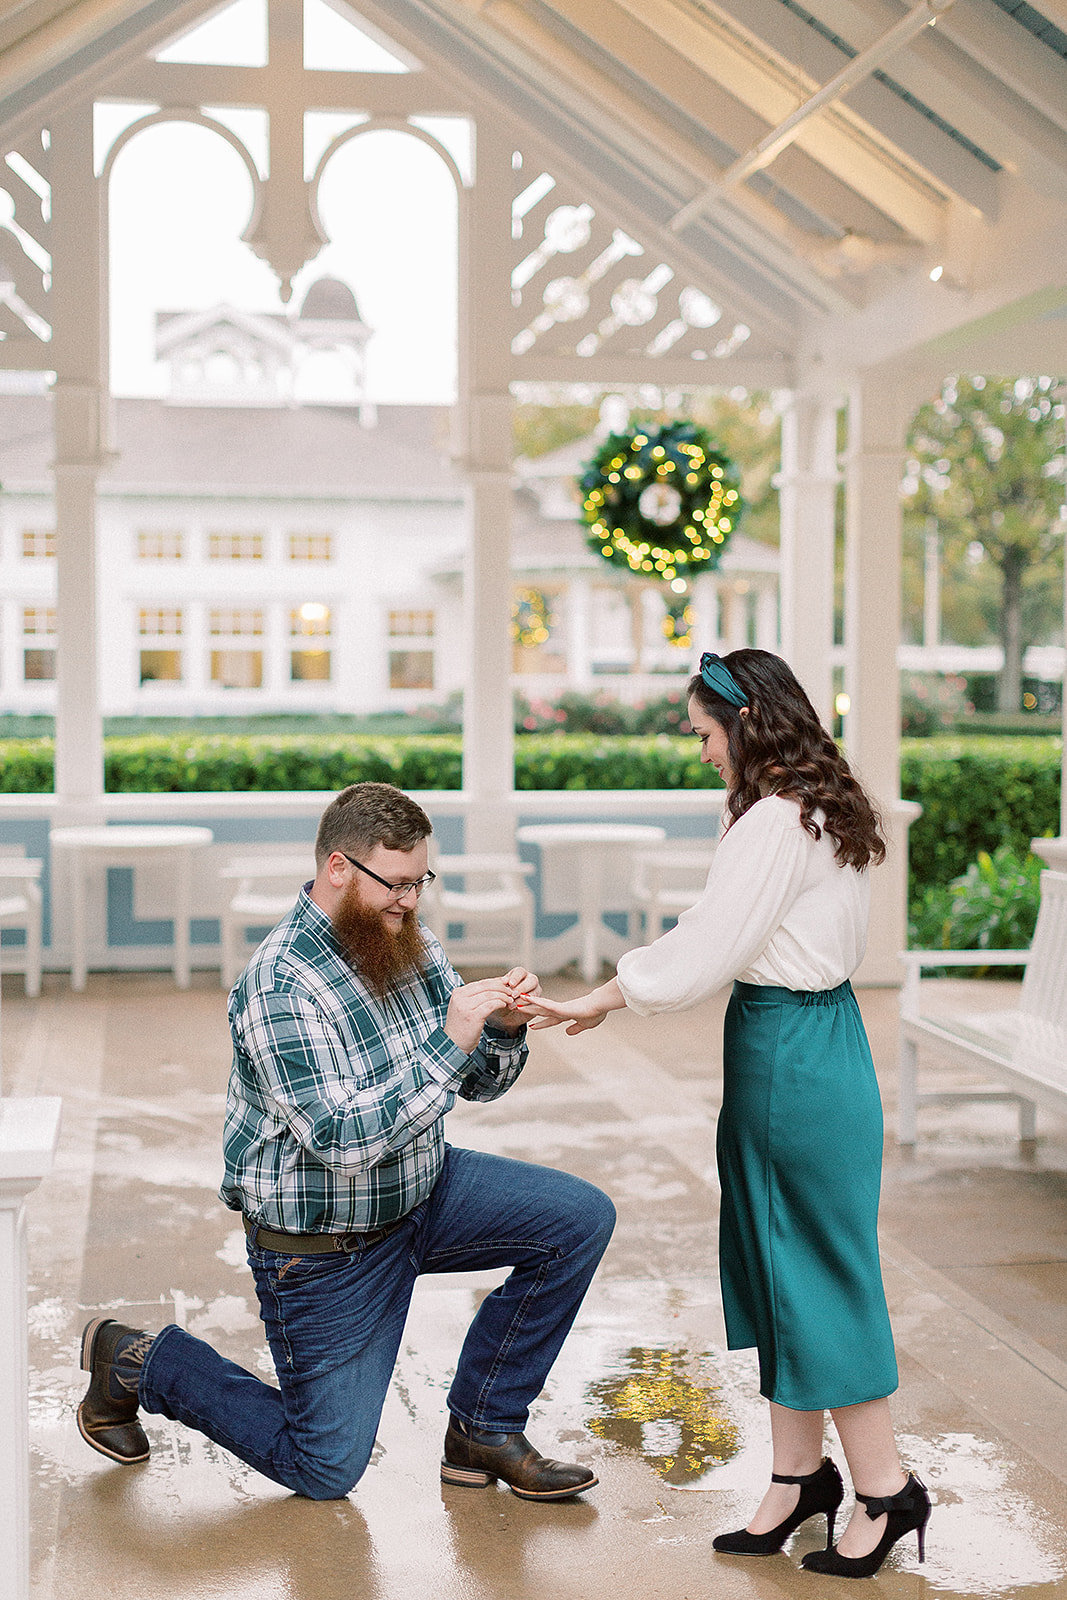 Cassidy_+_Kylor_Proposal_at_Disney_s_Beach_Club_Resort_Photographer_Casie_Marie_Photography-89